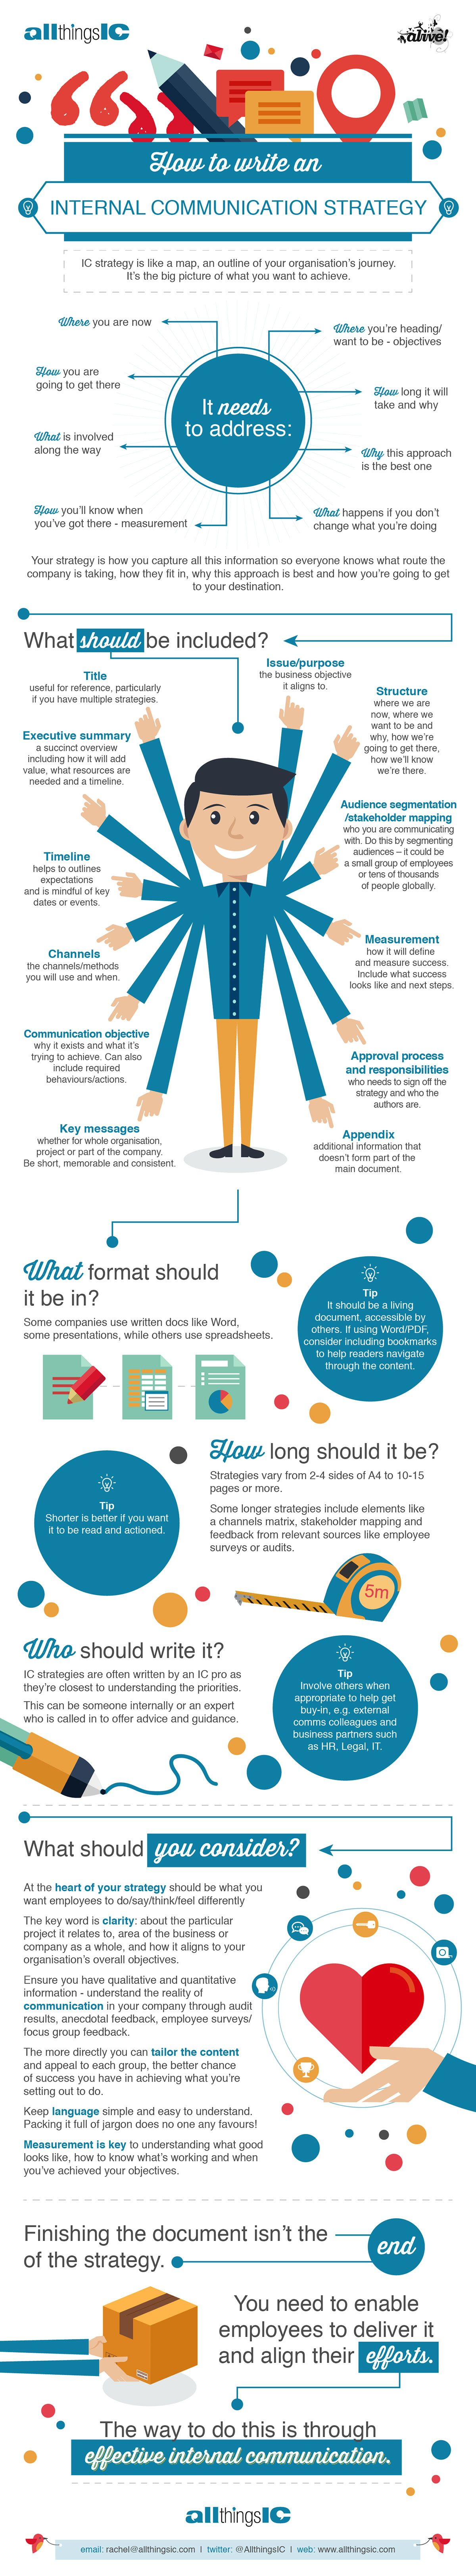 How to Write an Internal Communication Strategy #infographic